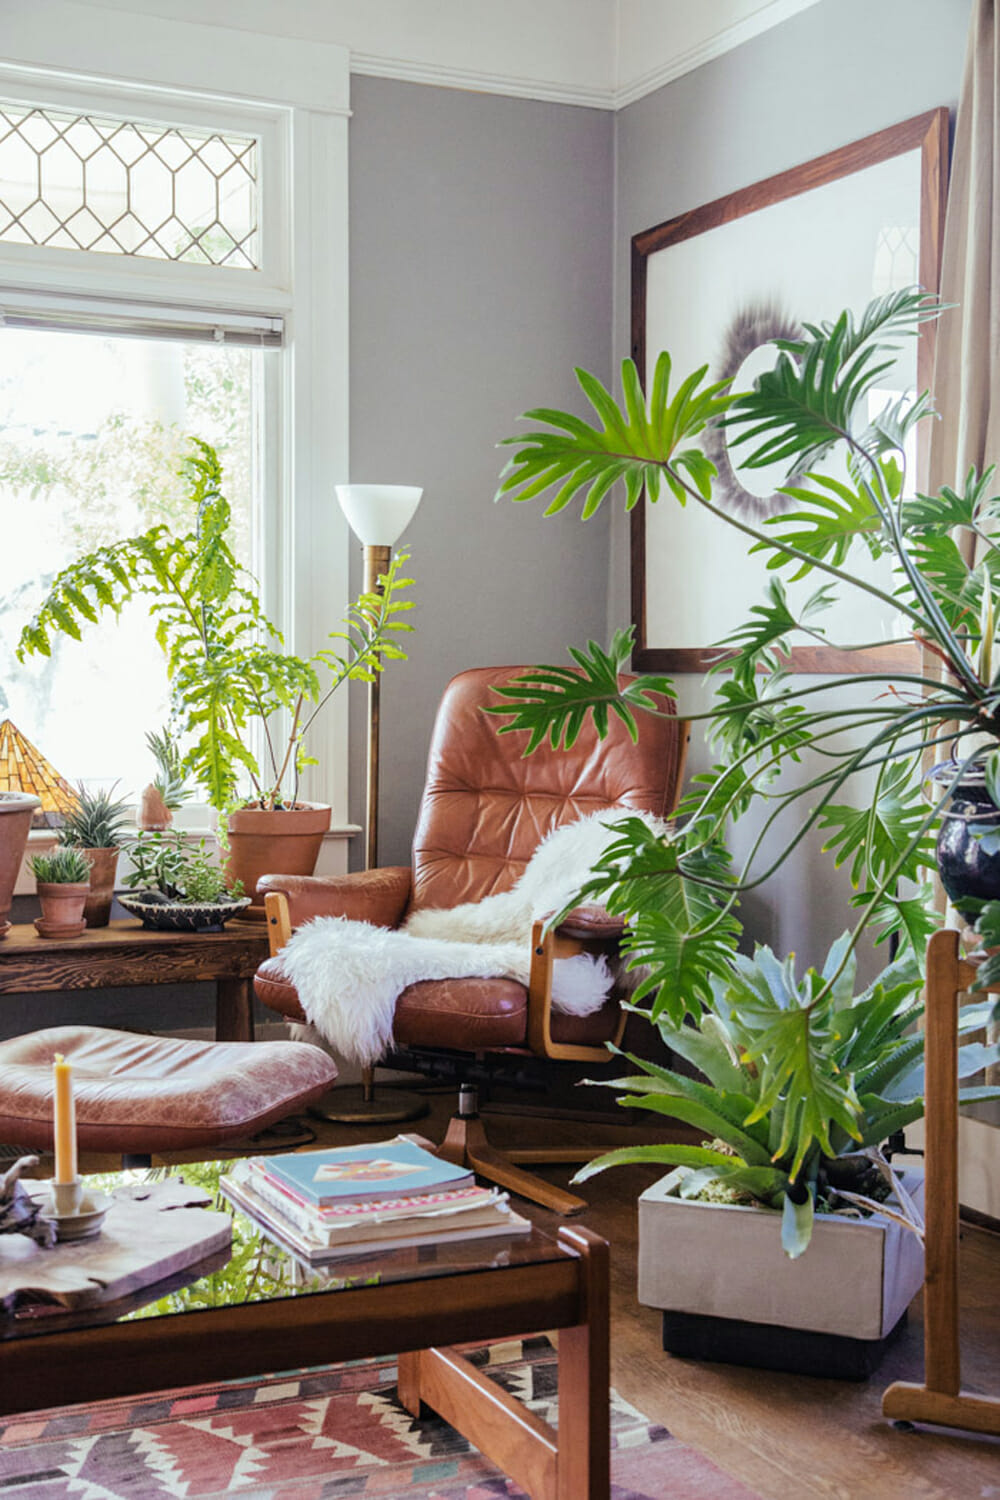 Where To Find Small Room Decorating Plants